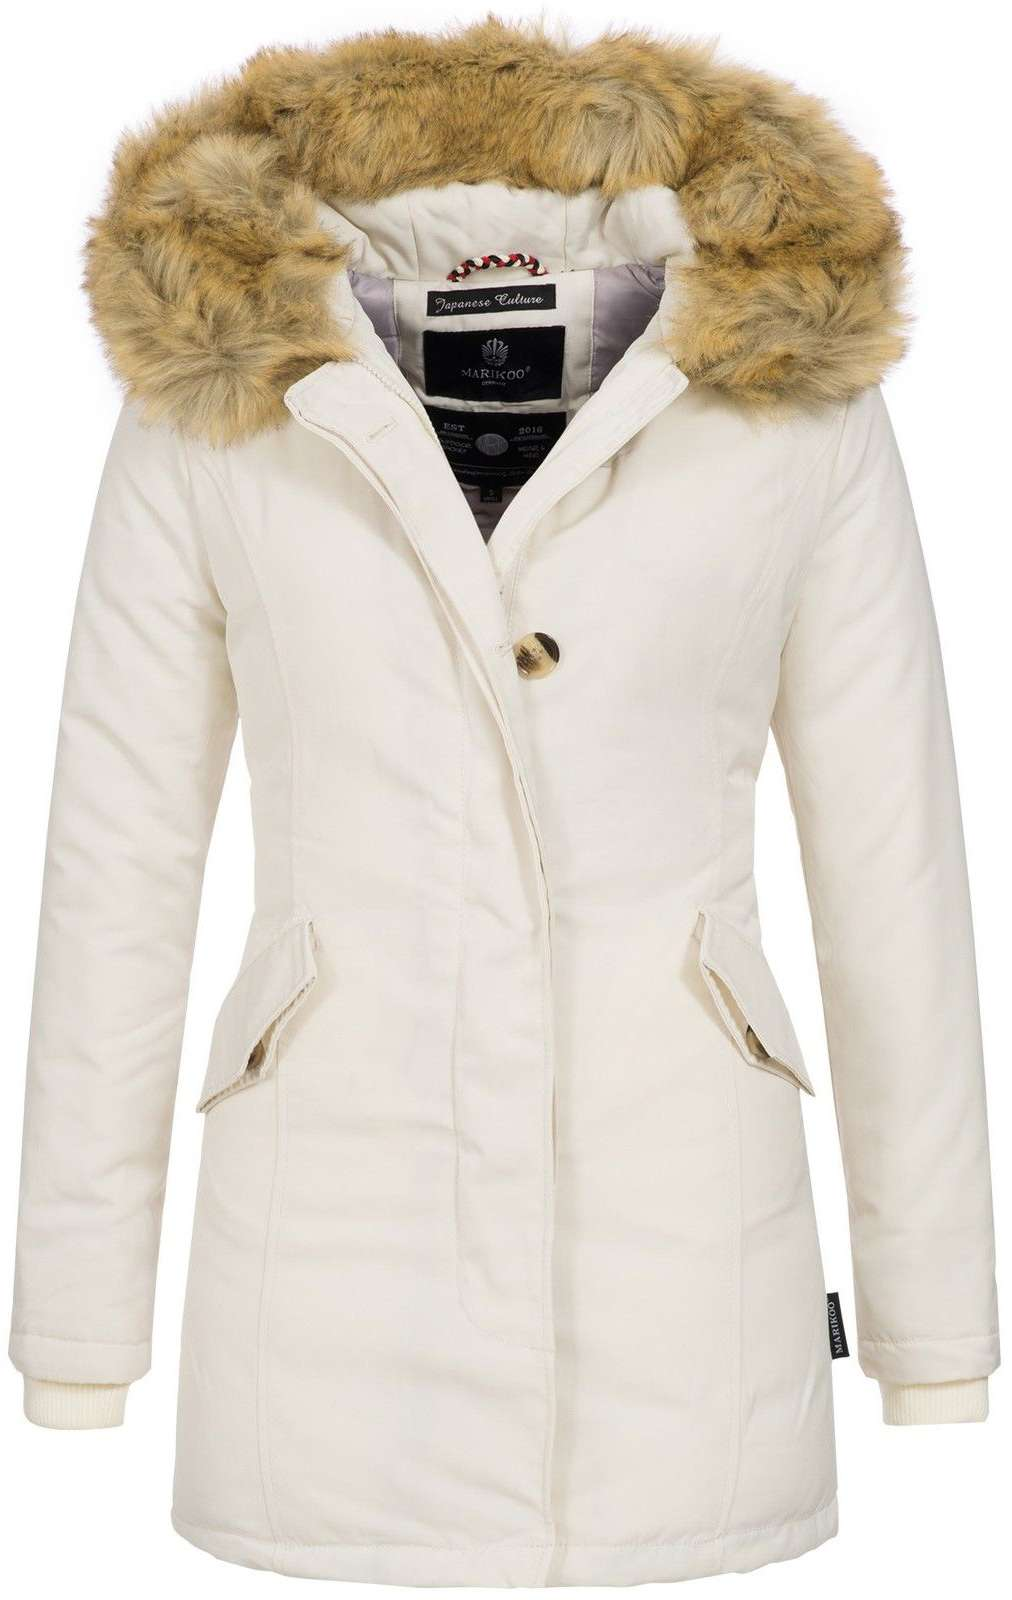 Ladies Marikoo Karmaa Jacket Winter Marikoo Ladies Winter Ladies Jacket Jacket Marikoo Winter Karmaa BrhQdtsCx